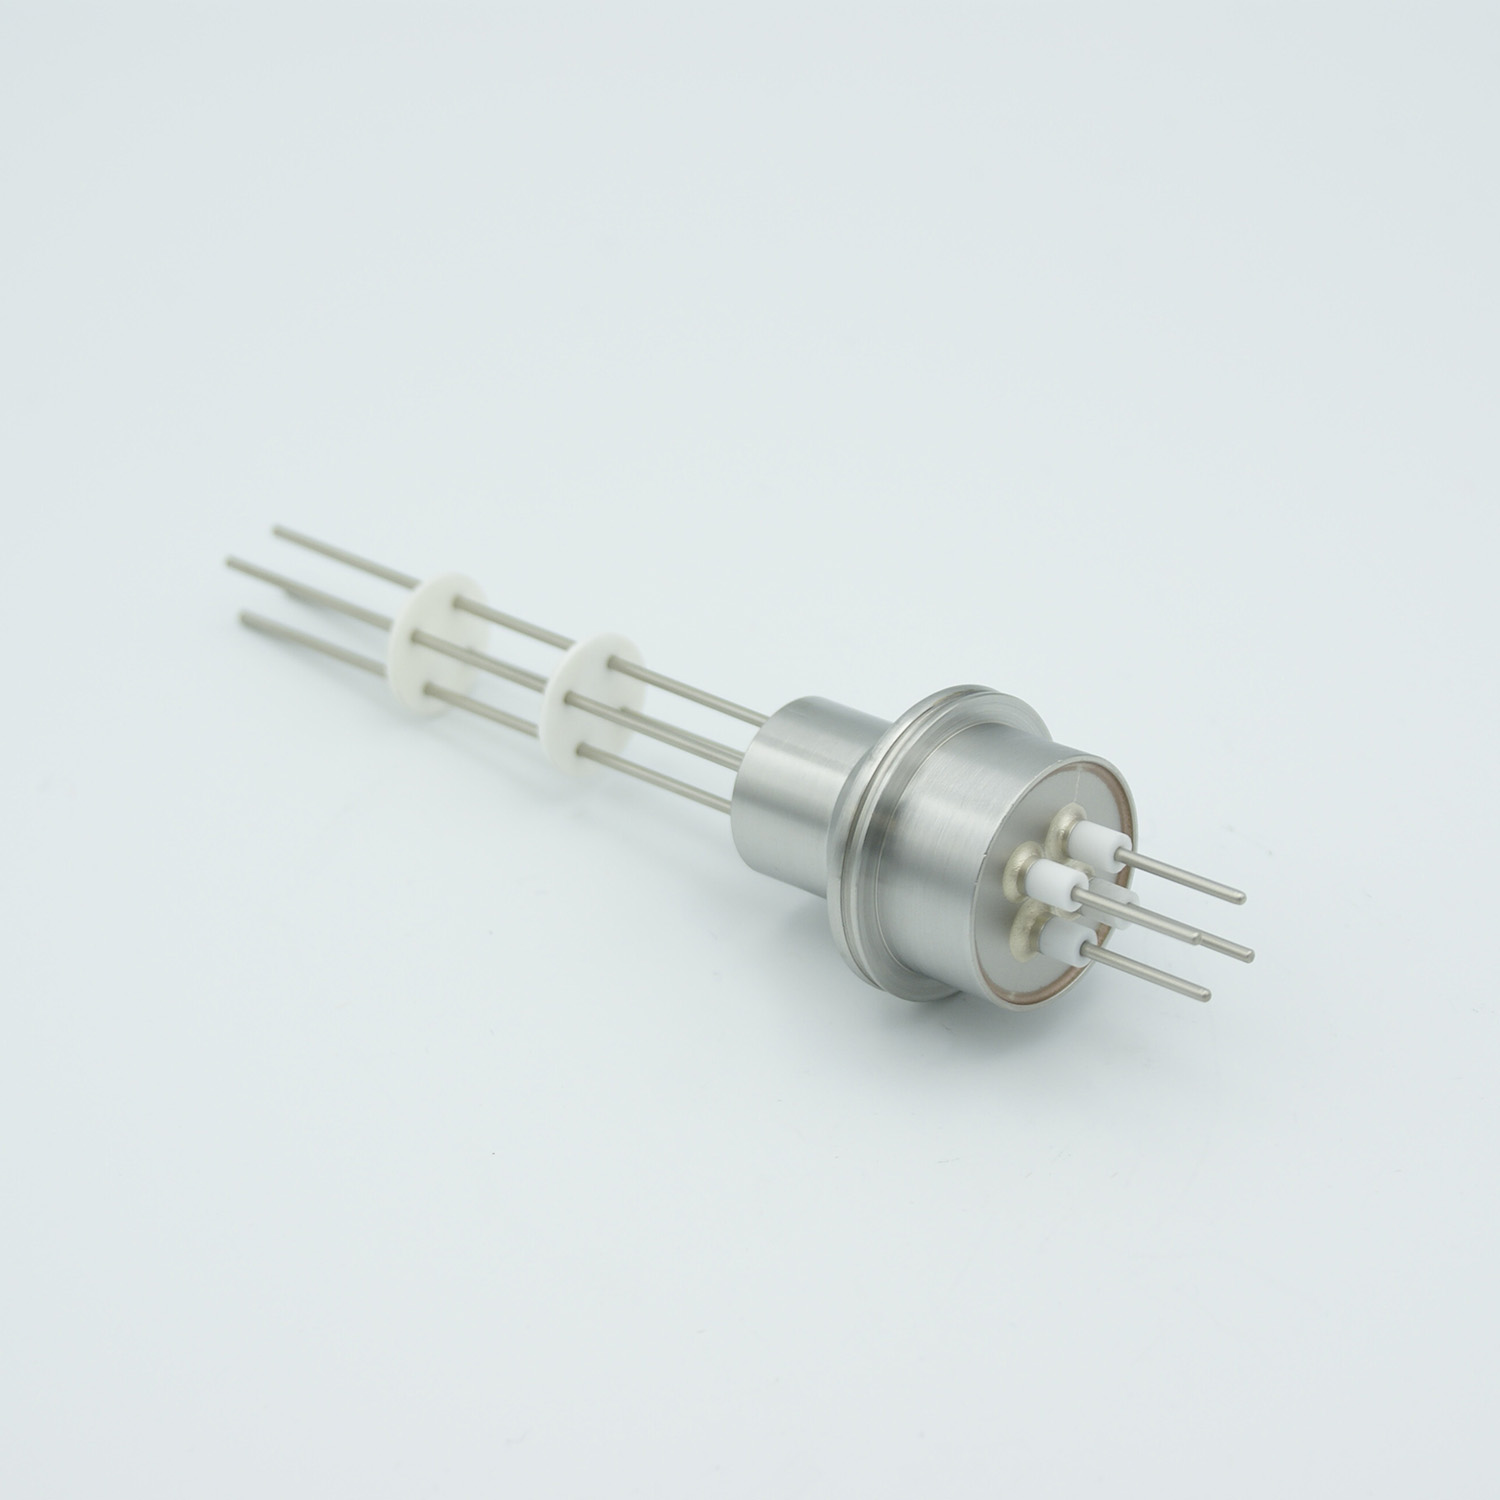 2 pair Thermocouple type-J feedthrough for push on connectors, weld fitting